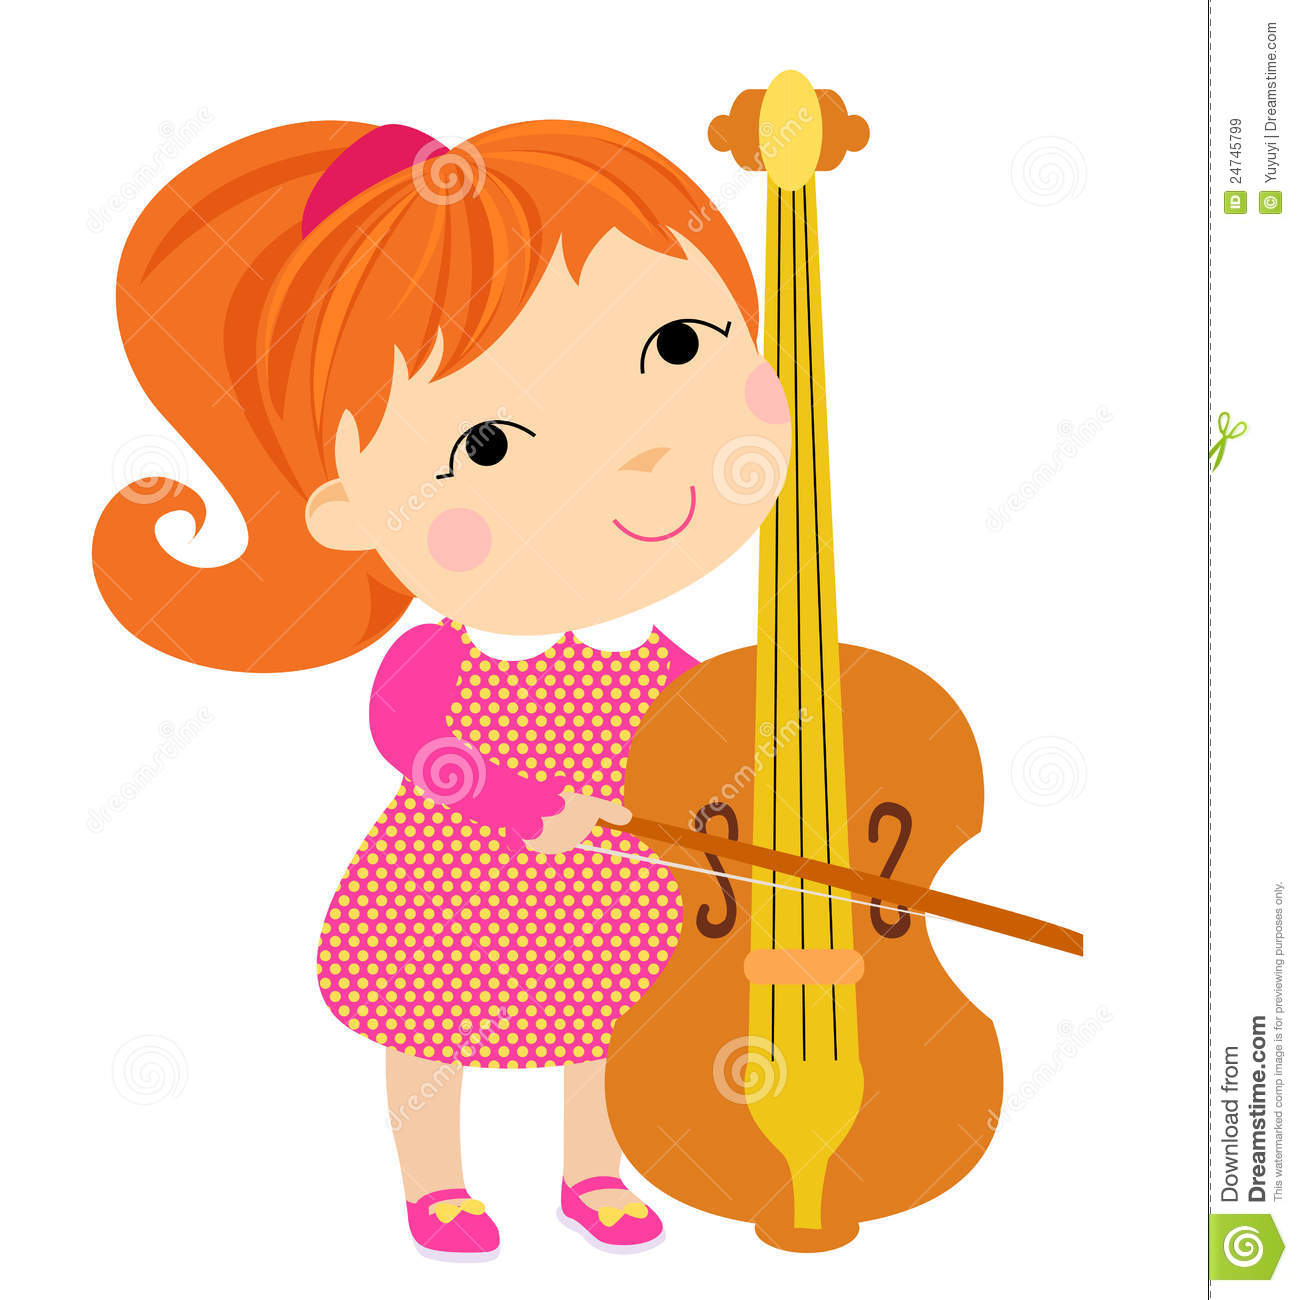 Cello cartoon cello player stock photography image 32561422 - Lovely Girl Playing Cello Royalty Free Stock Images